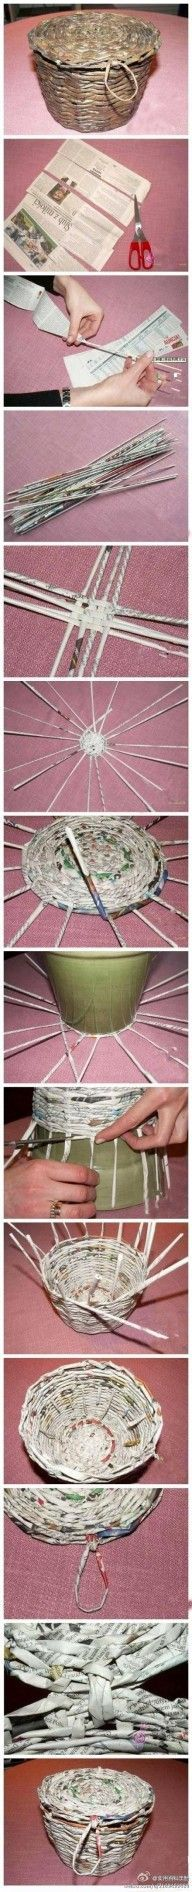 DIY Newspaper Basket DIY Projects